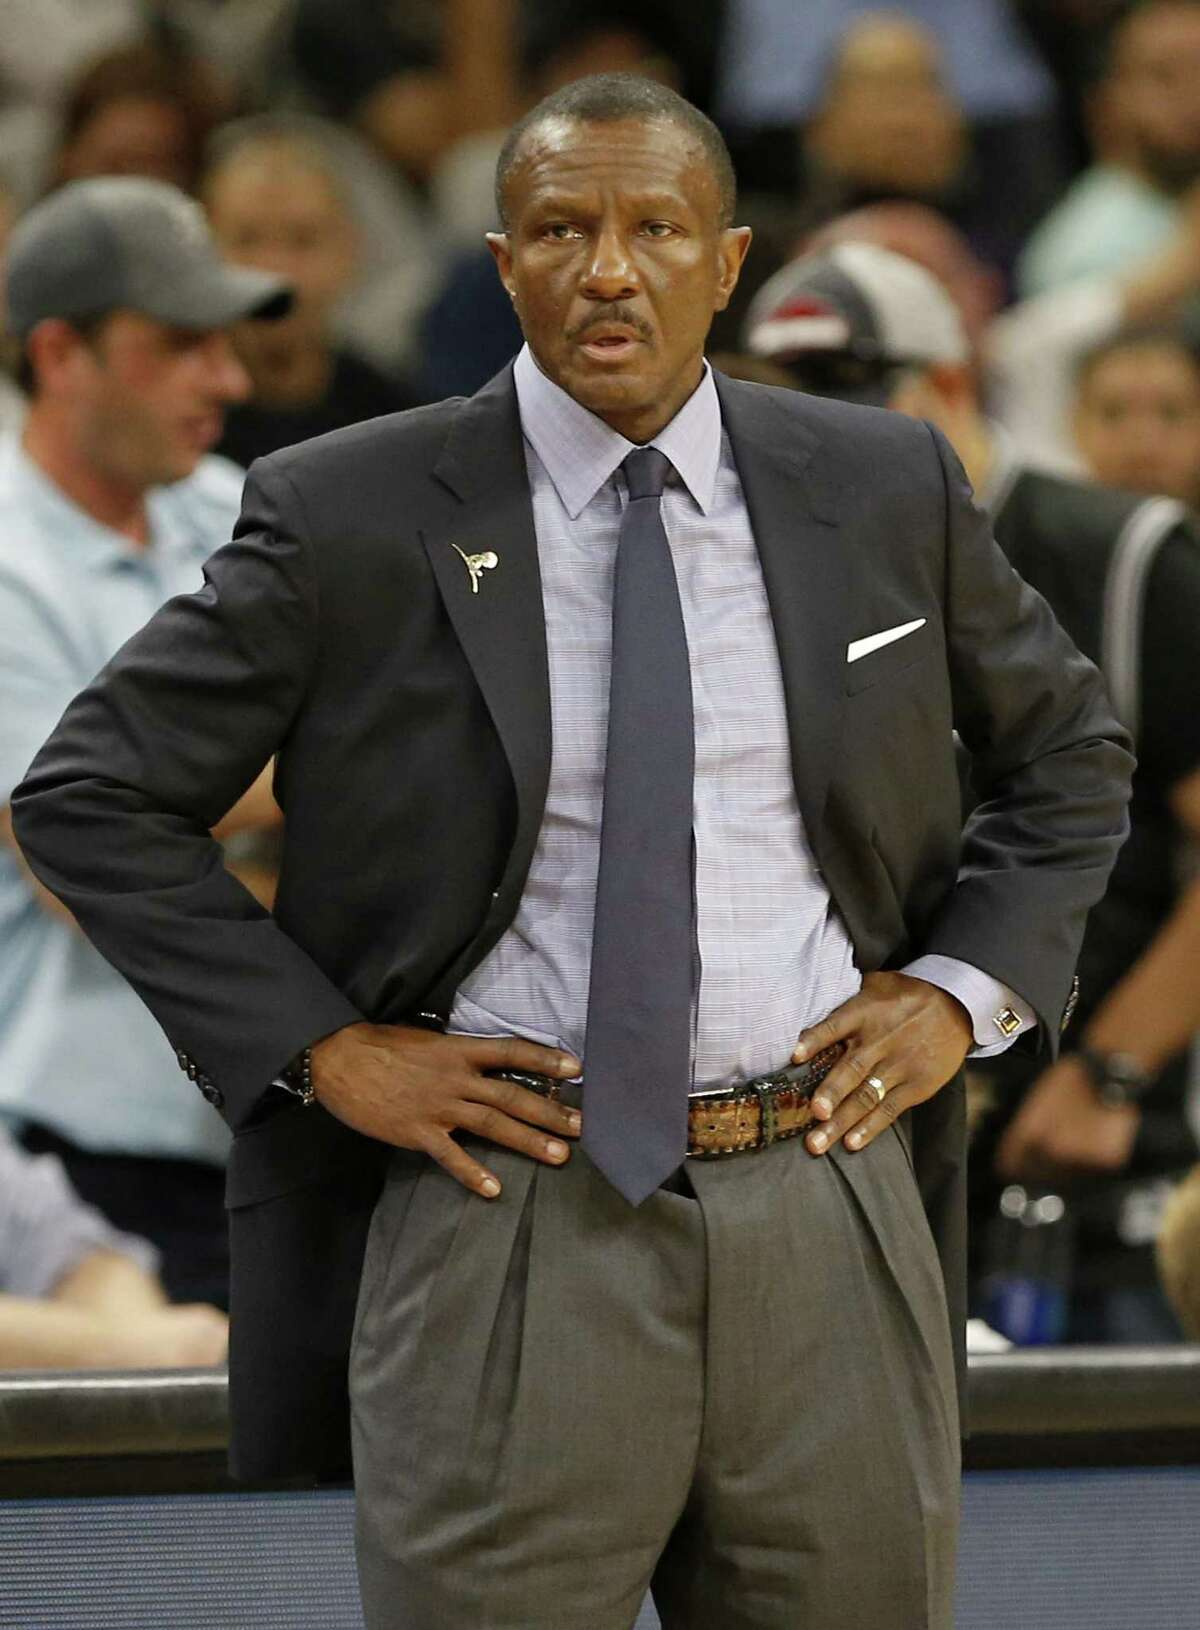 Toronto Raptors head coach Dwane Casey watches first half action against the San Antonio Spurs Monday Oct. 23, 2017 at the AT&T Center.